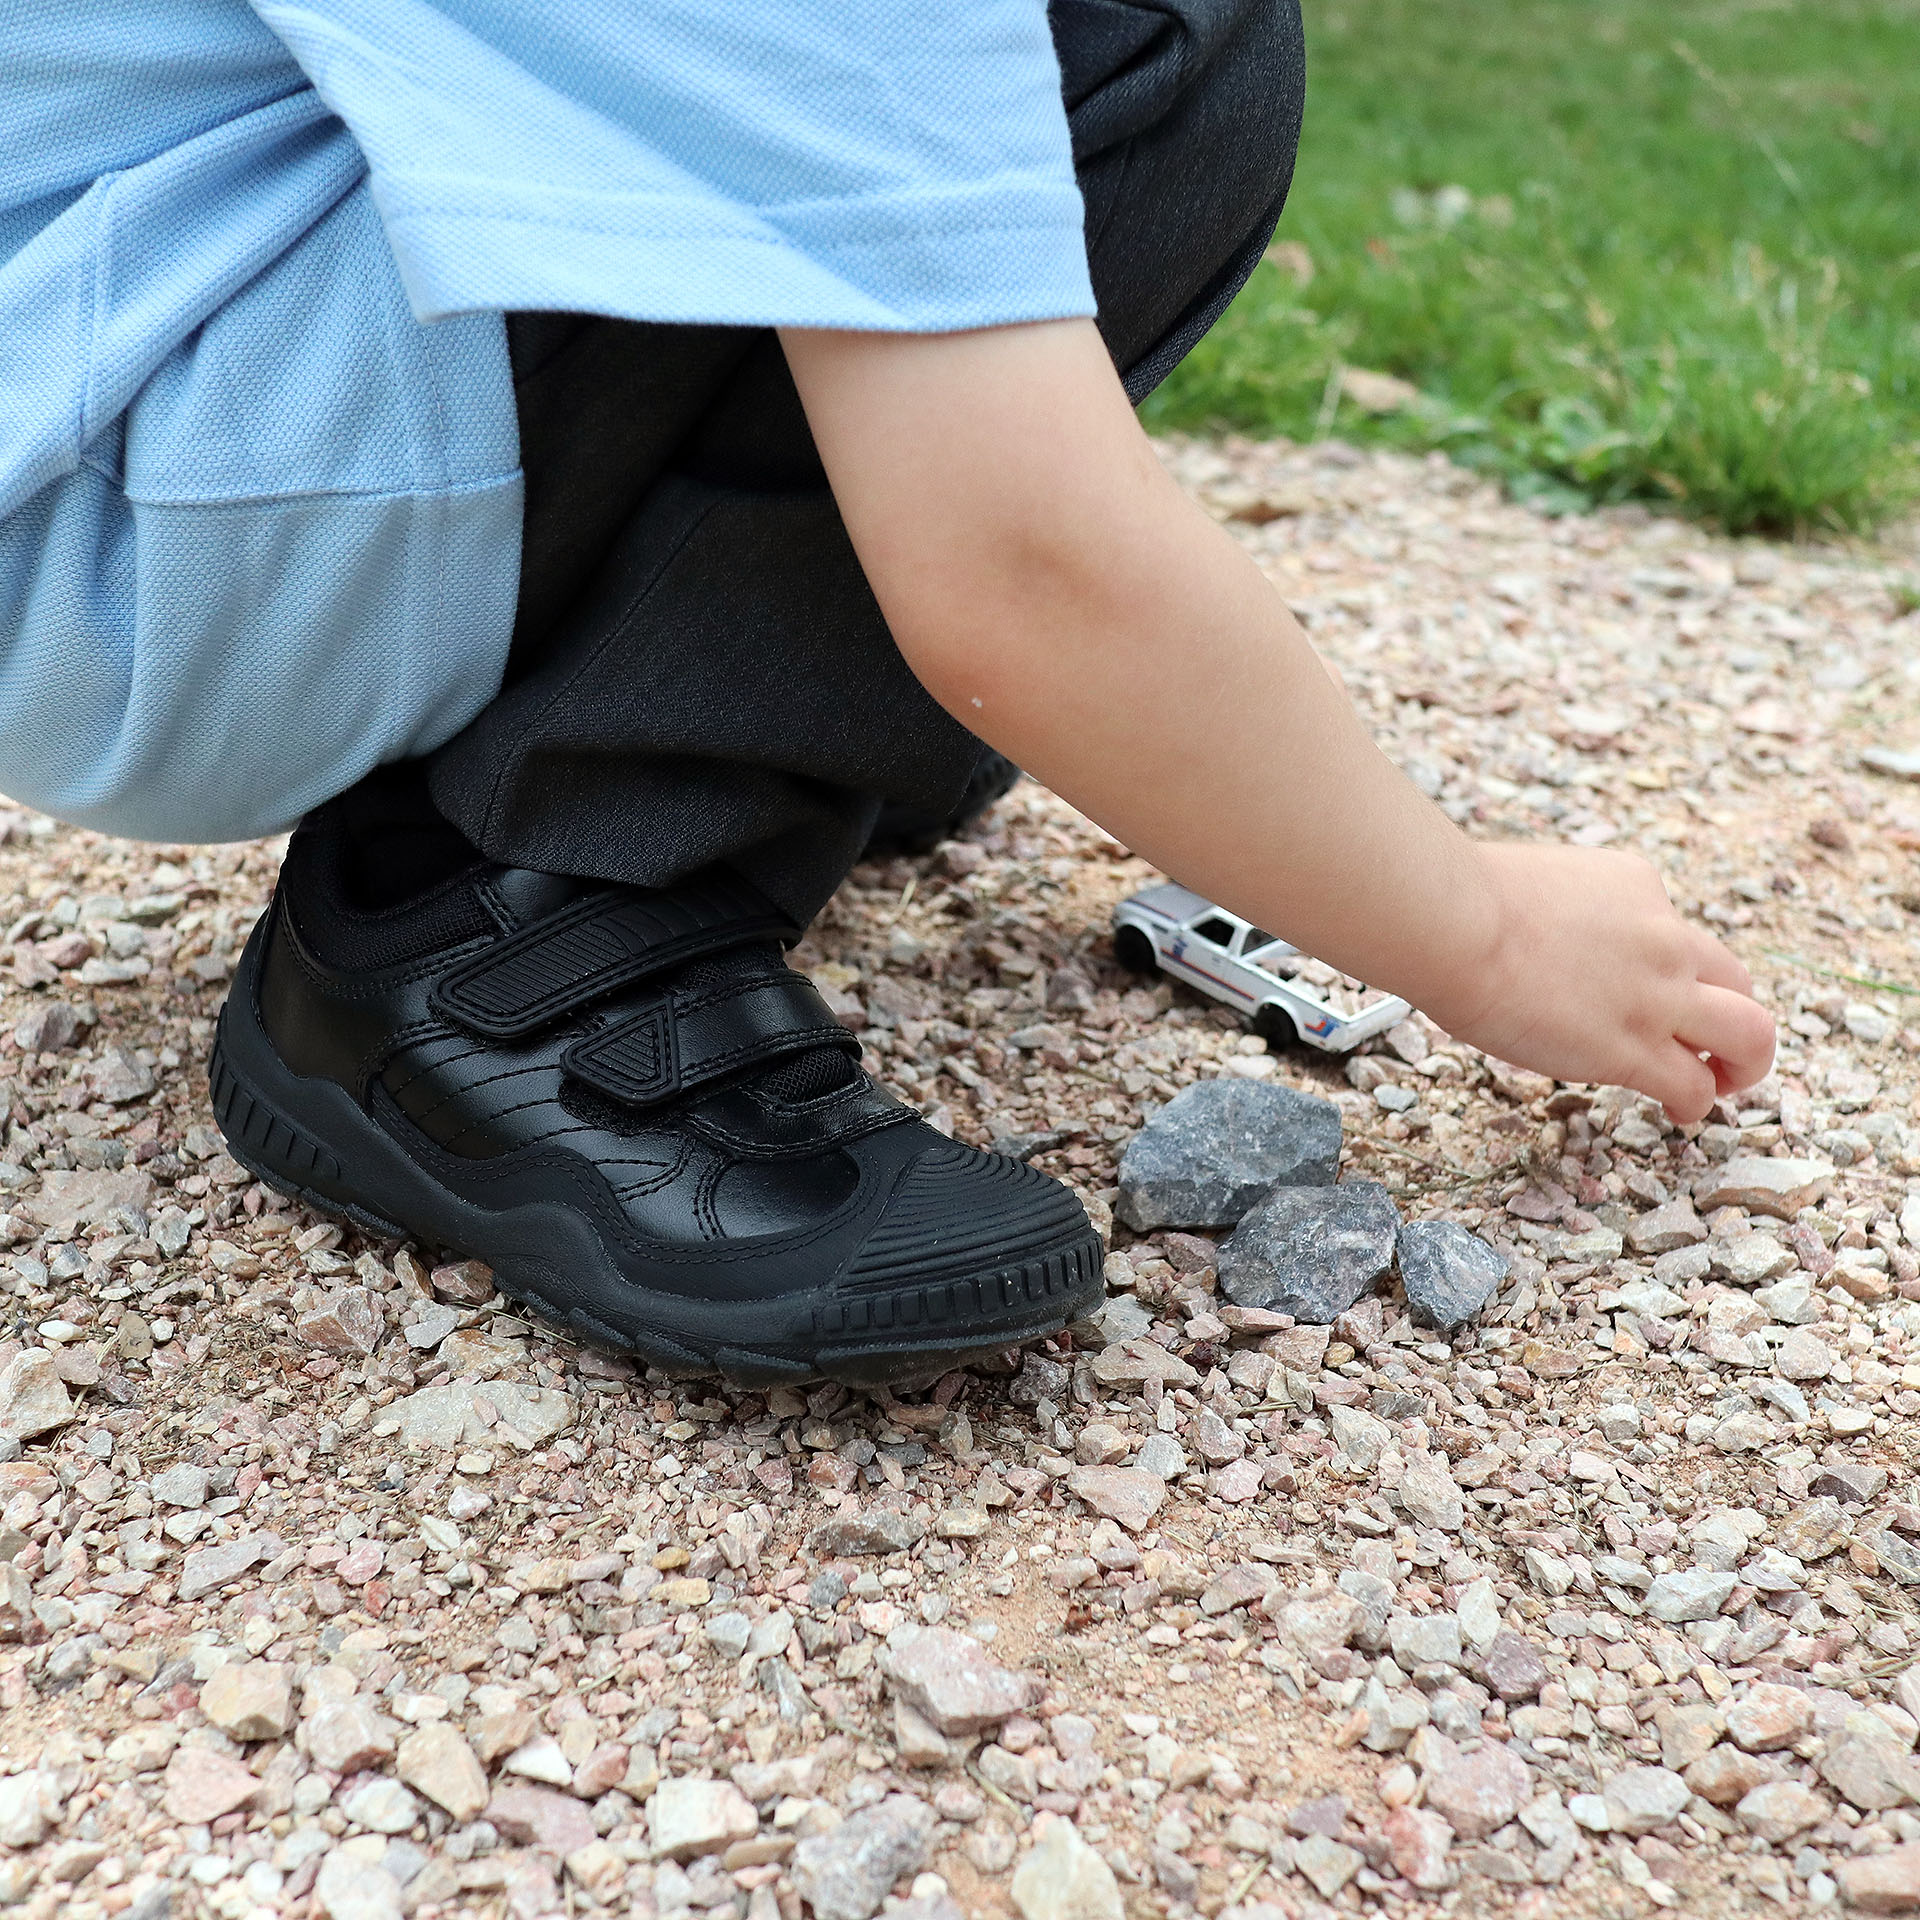 Oscar playing outdoors, wearing his Start-Rite school shoes